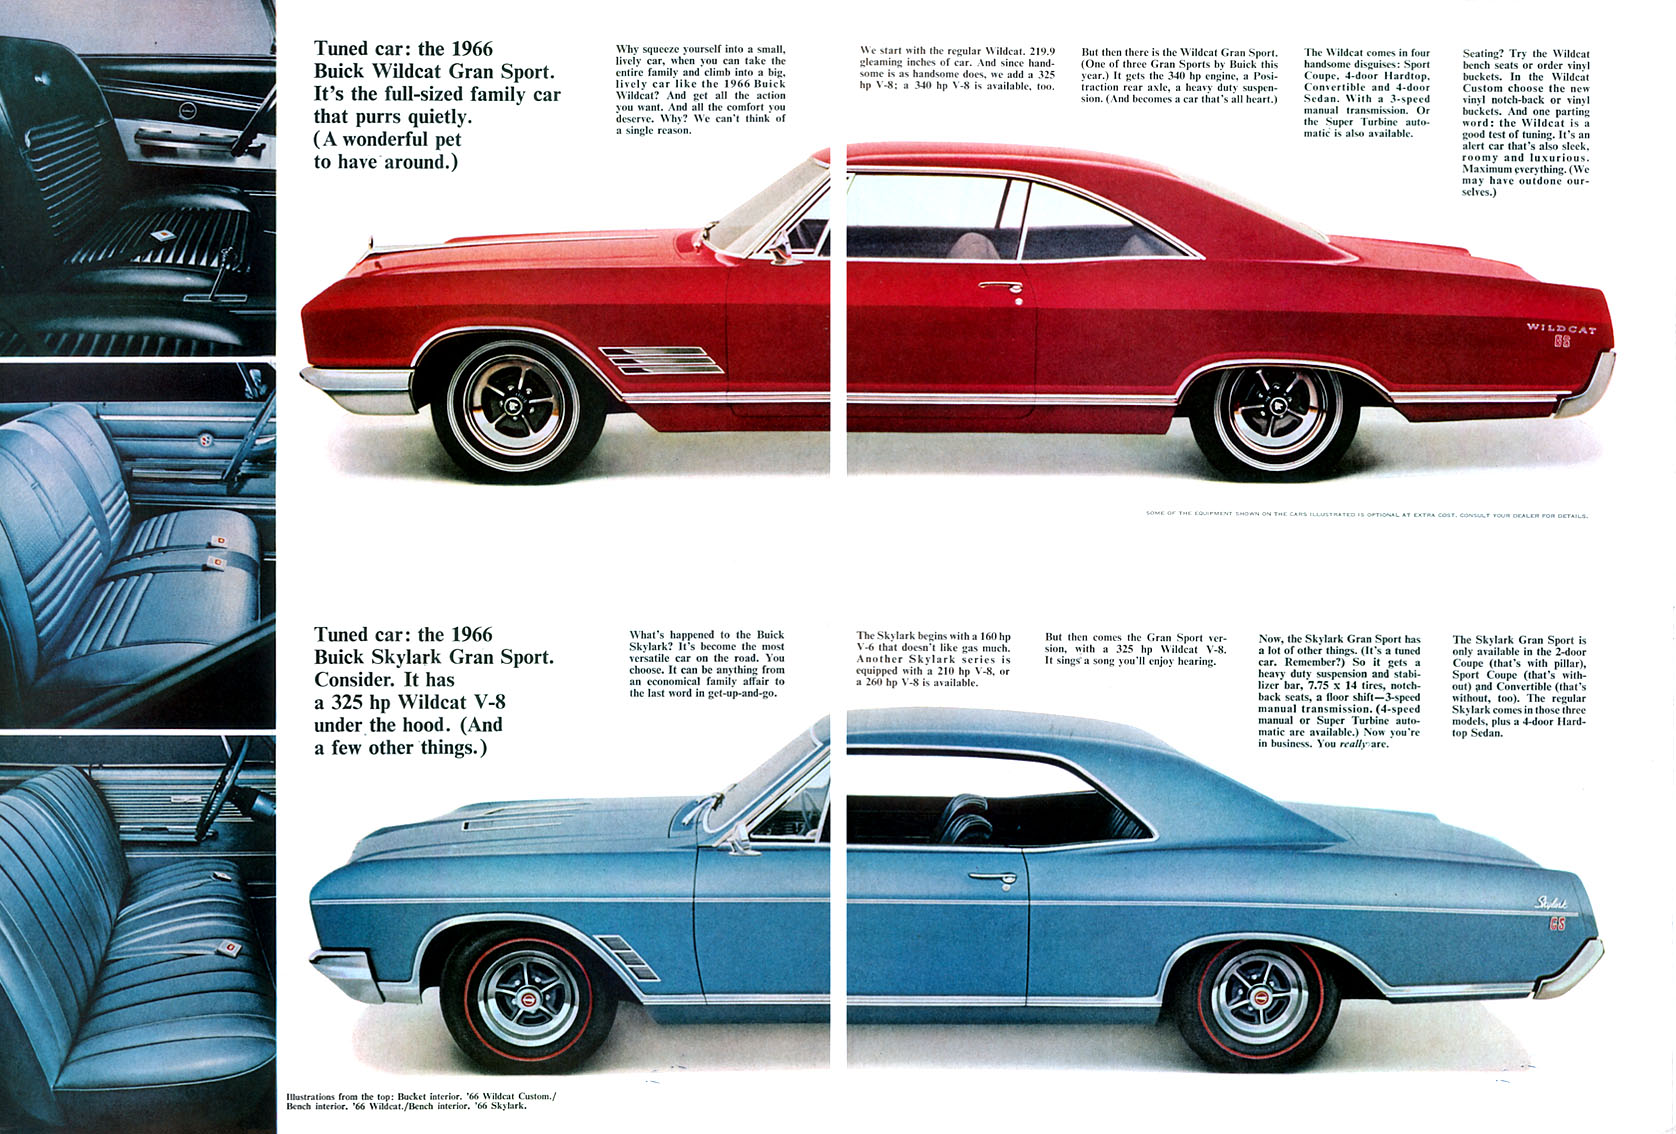 Classic car database with detailed 1966 buick skylark facts history specifications colors and quarter performance times and more